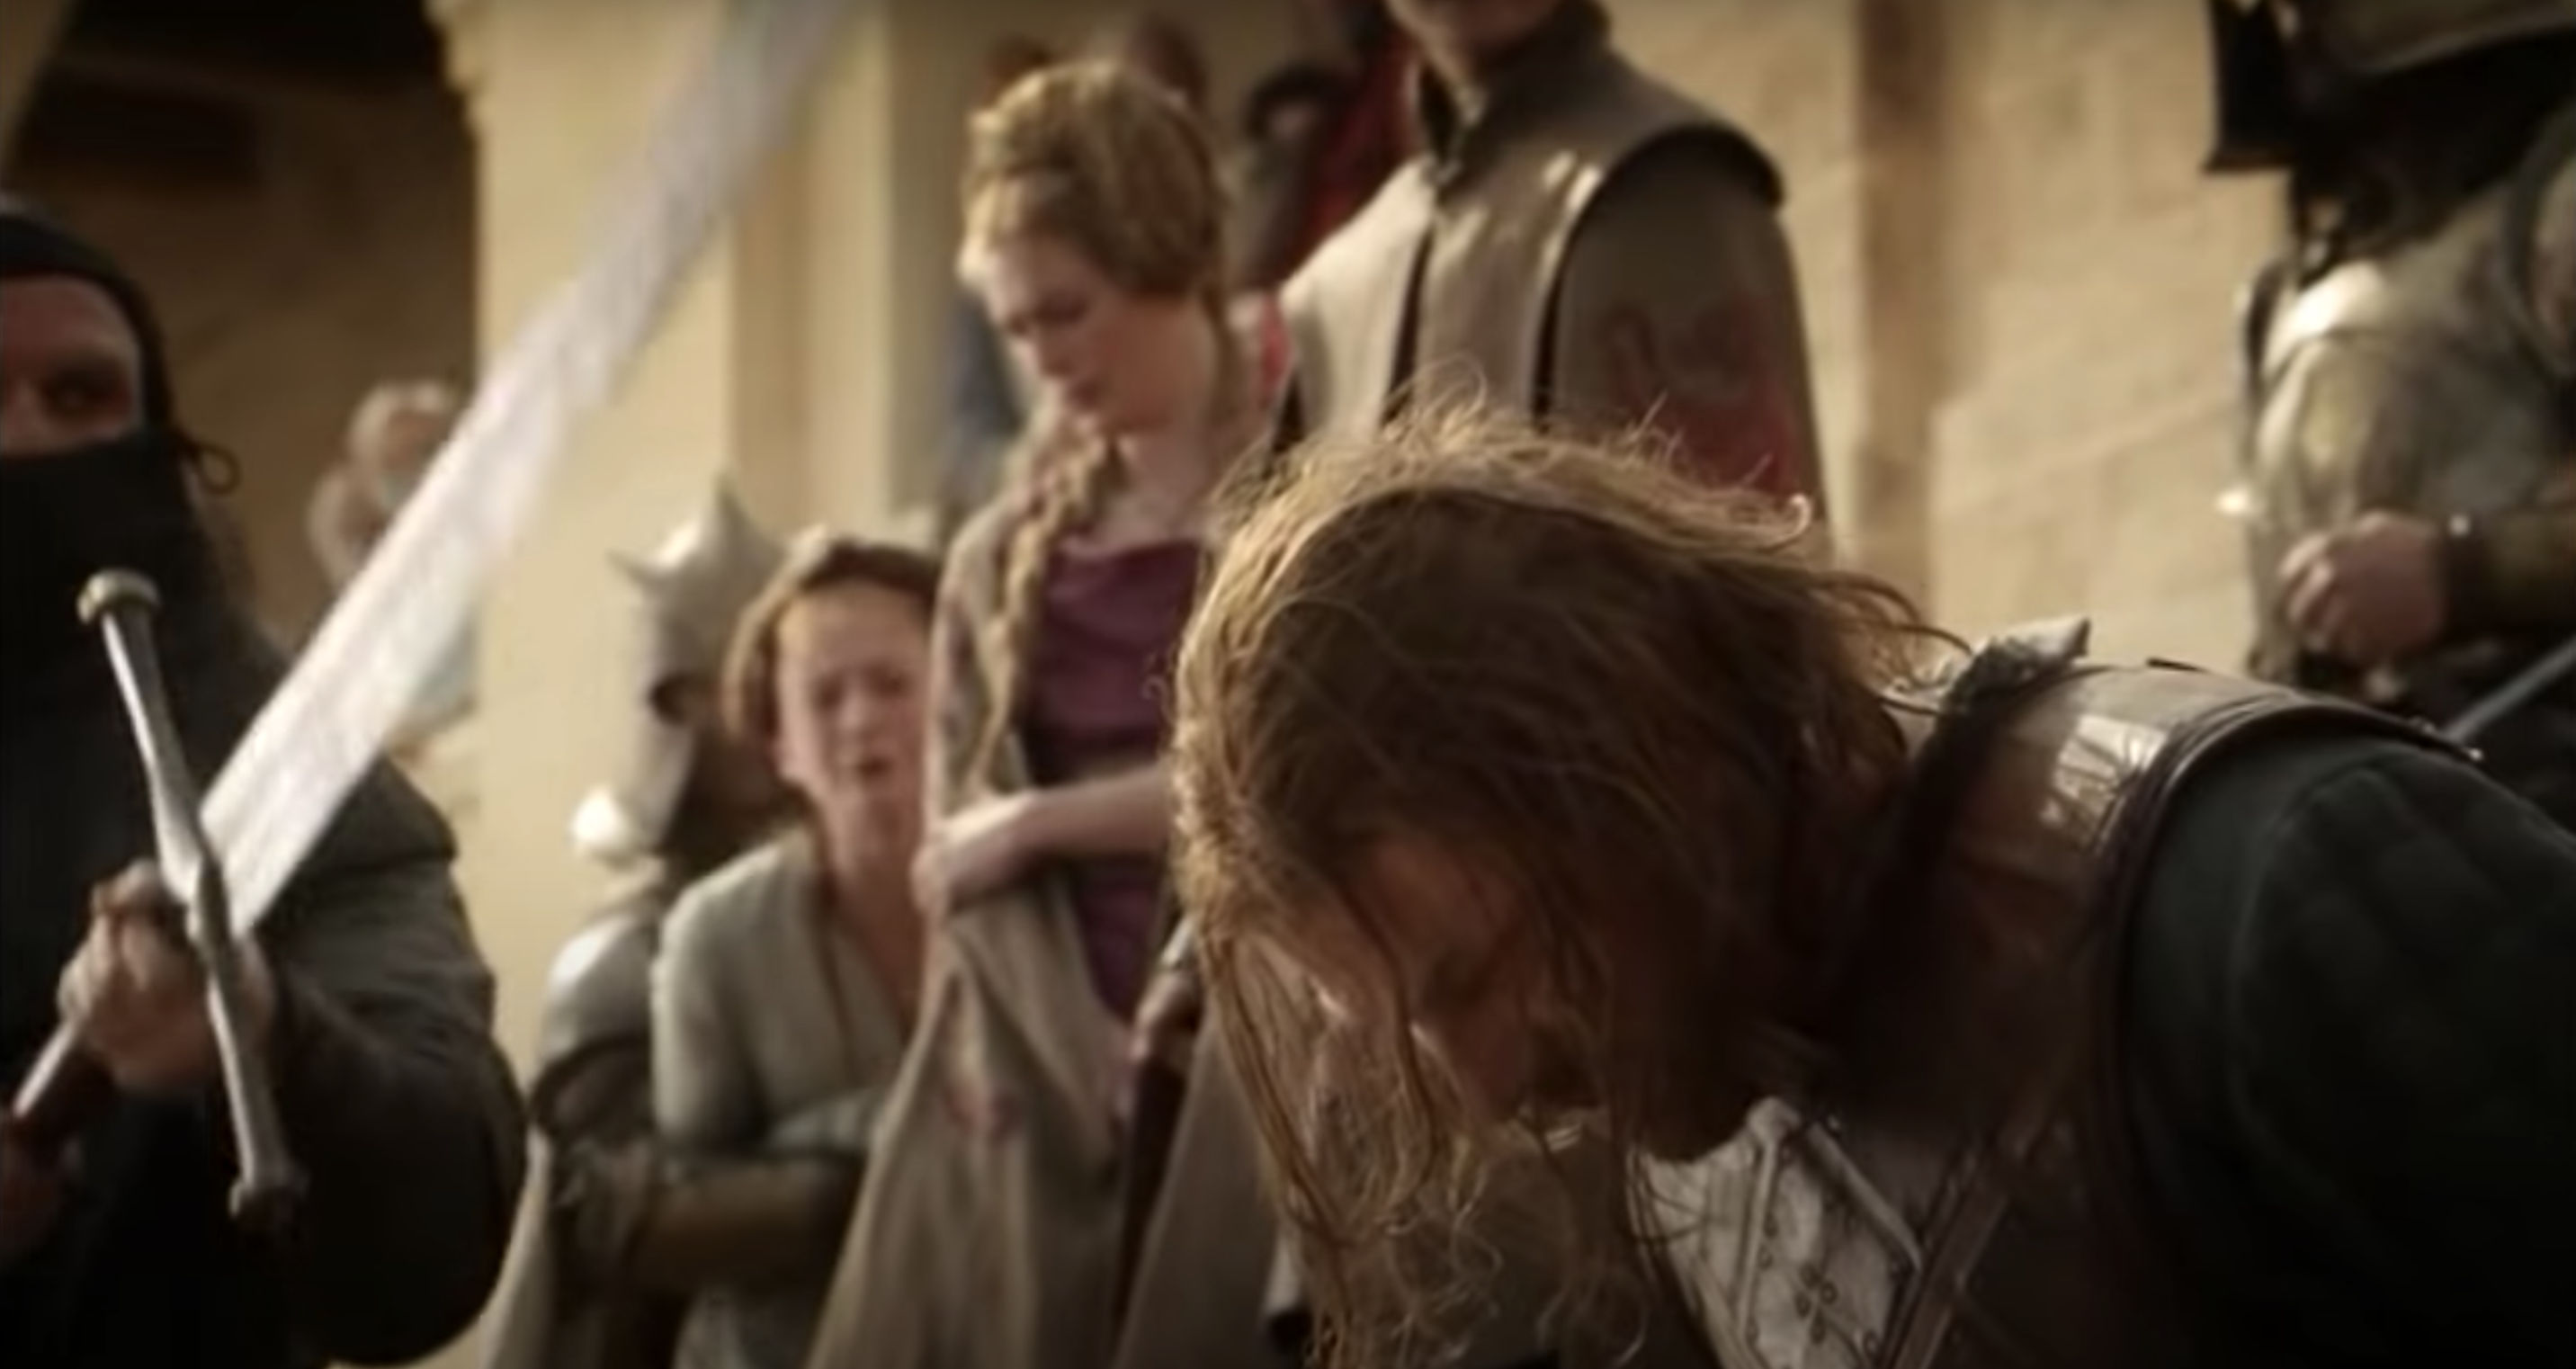 Still from Game of Thrones: Ned Stark kneels as an executioner swings a sword above his head; Joffrey looks on smiling, Cersei watches concerned and Sansa is screaming, being held back by a guard. A crowd watches from the castle in the background.